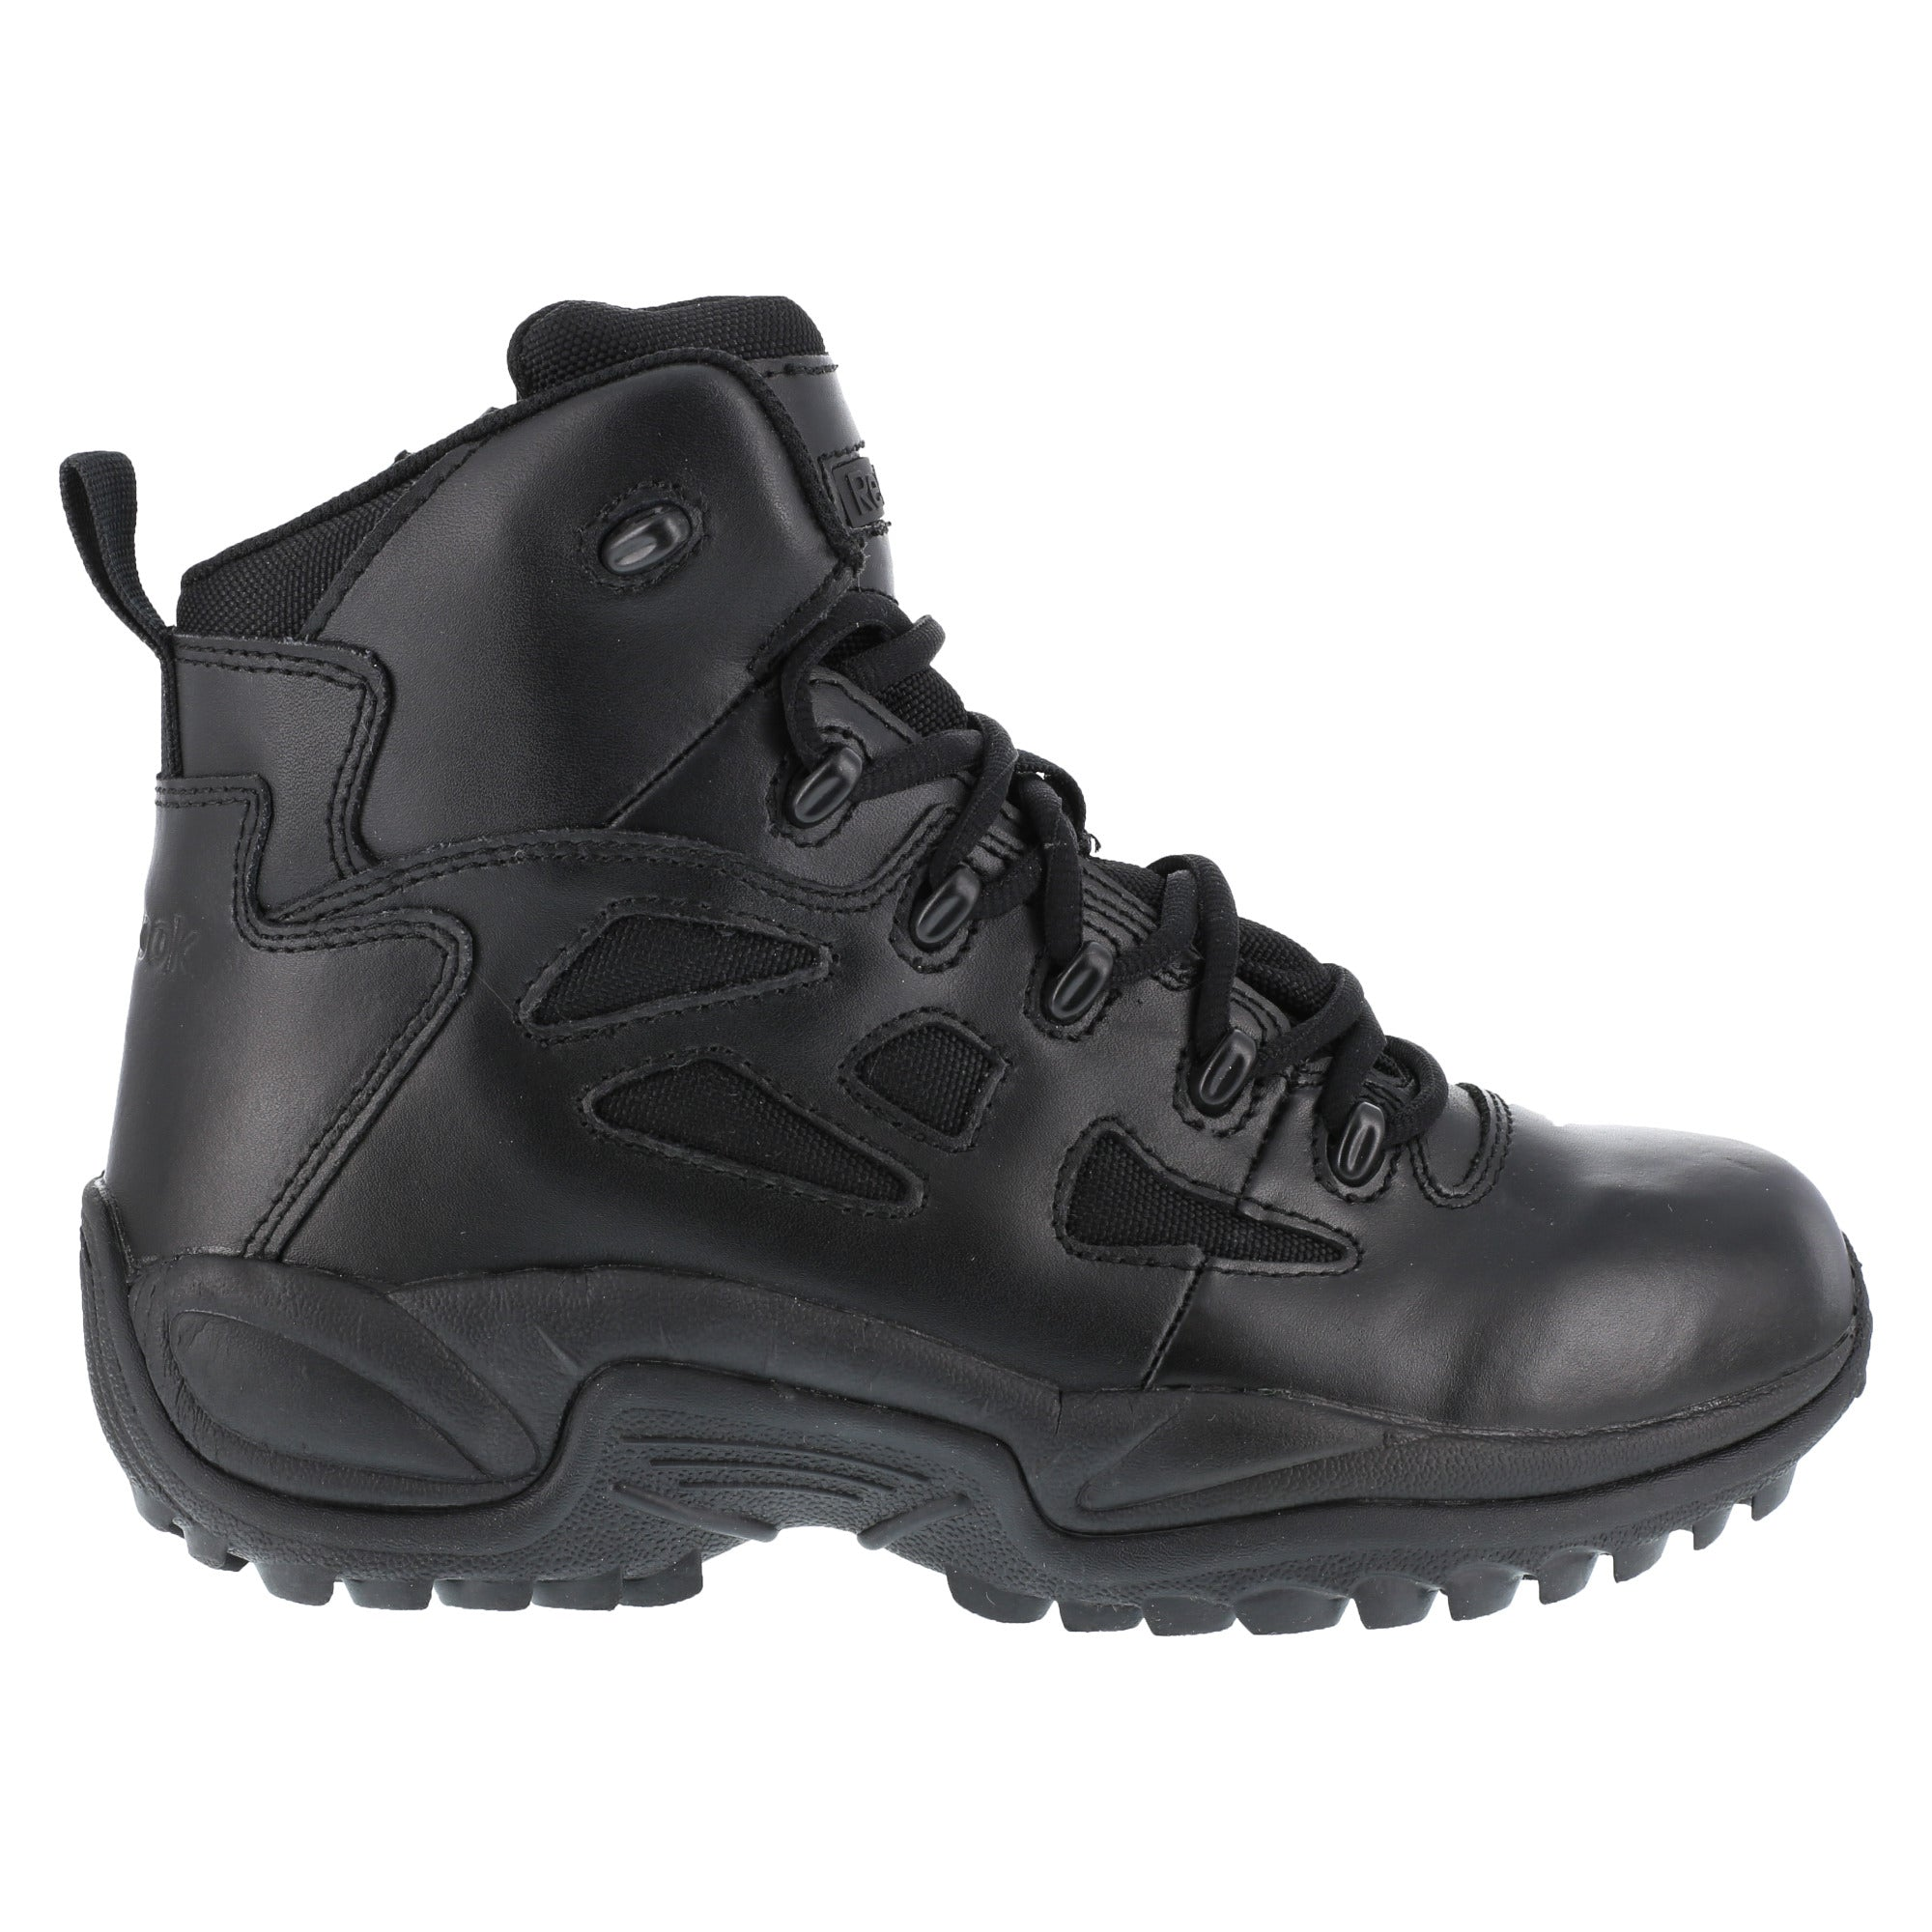 Reebok Mens Black Leather 6in Tactical Boots Rapid Response RB Soft ... 02dd67dac